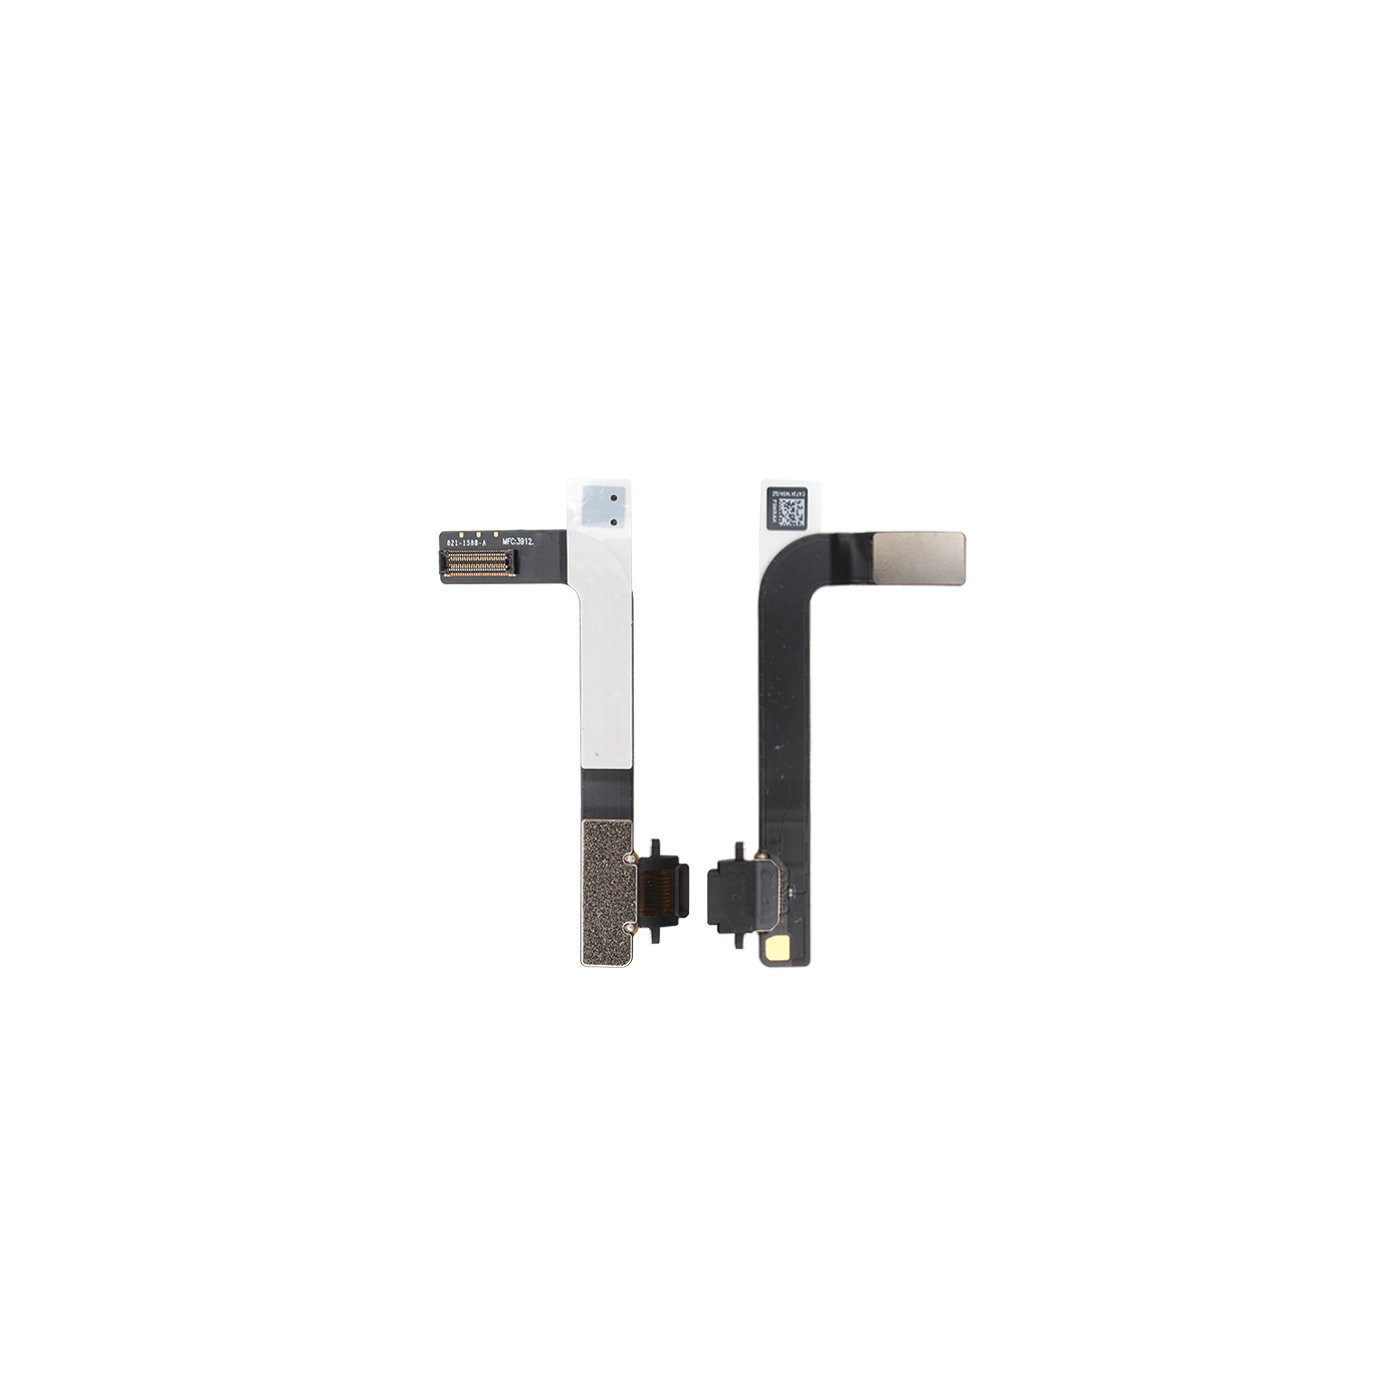 Conector de carga flexible para Apple ipad 4 data dock